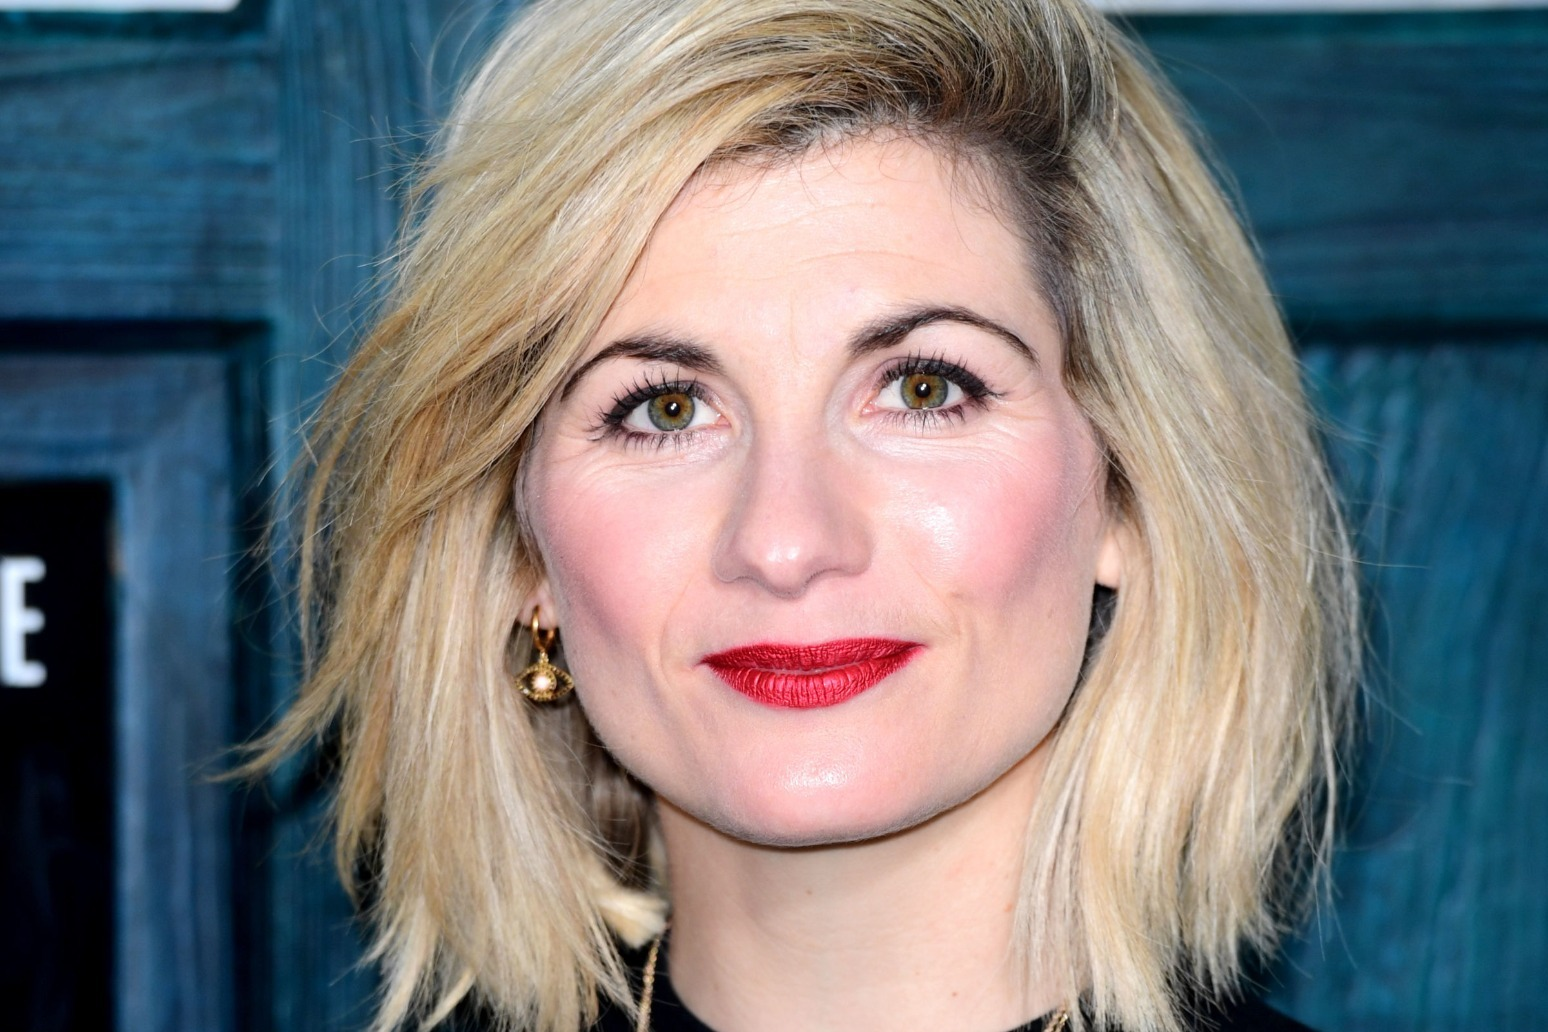 DOCTOR WHO RETURNS TO SCREENS WITH A SHOCK TWIST